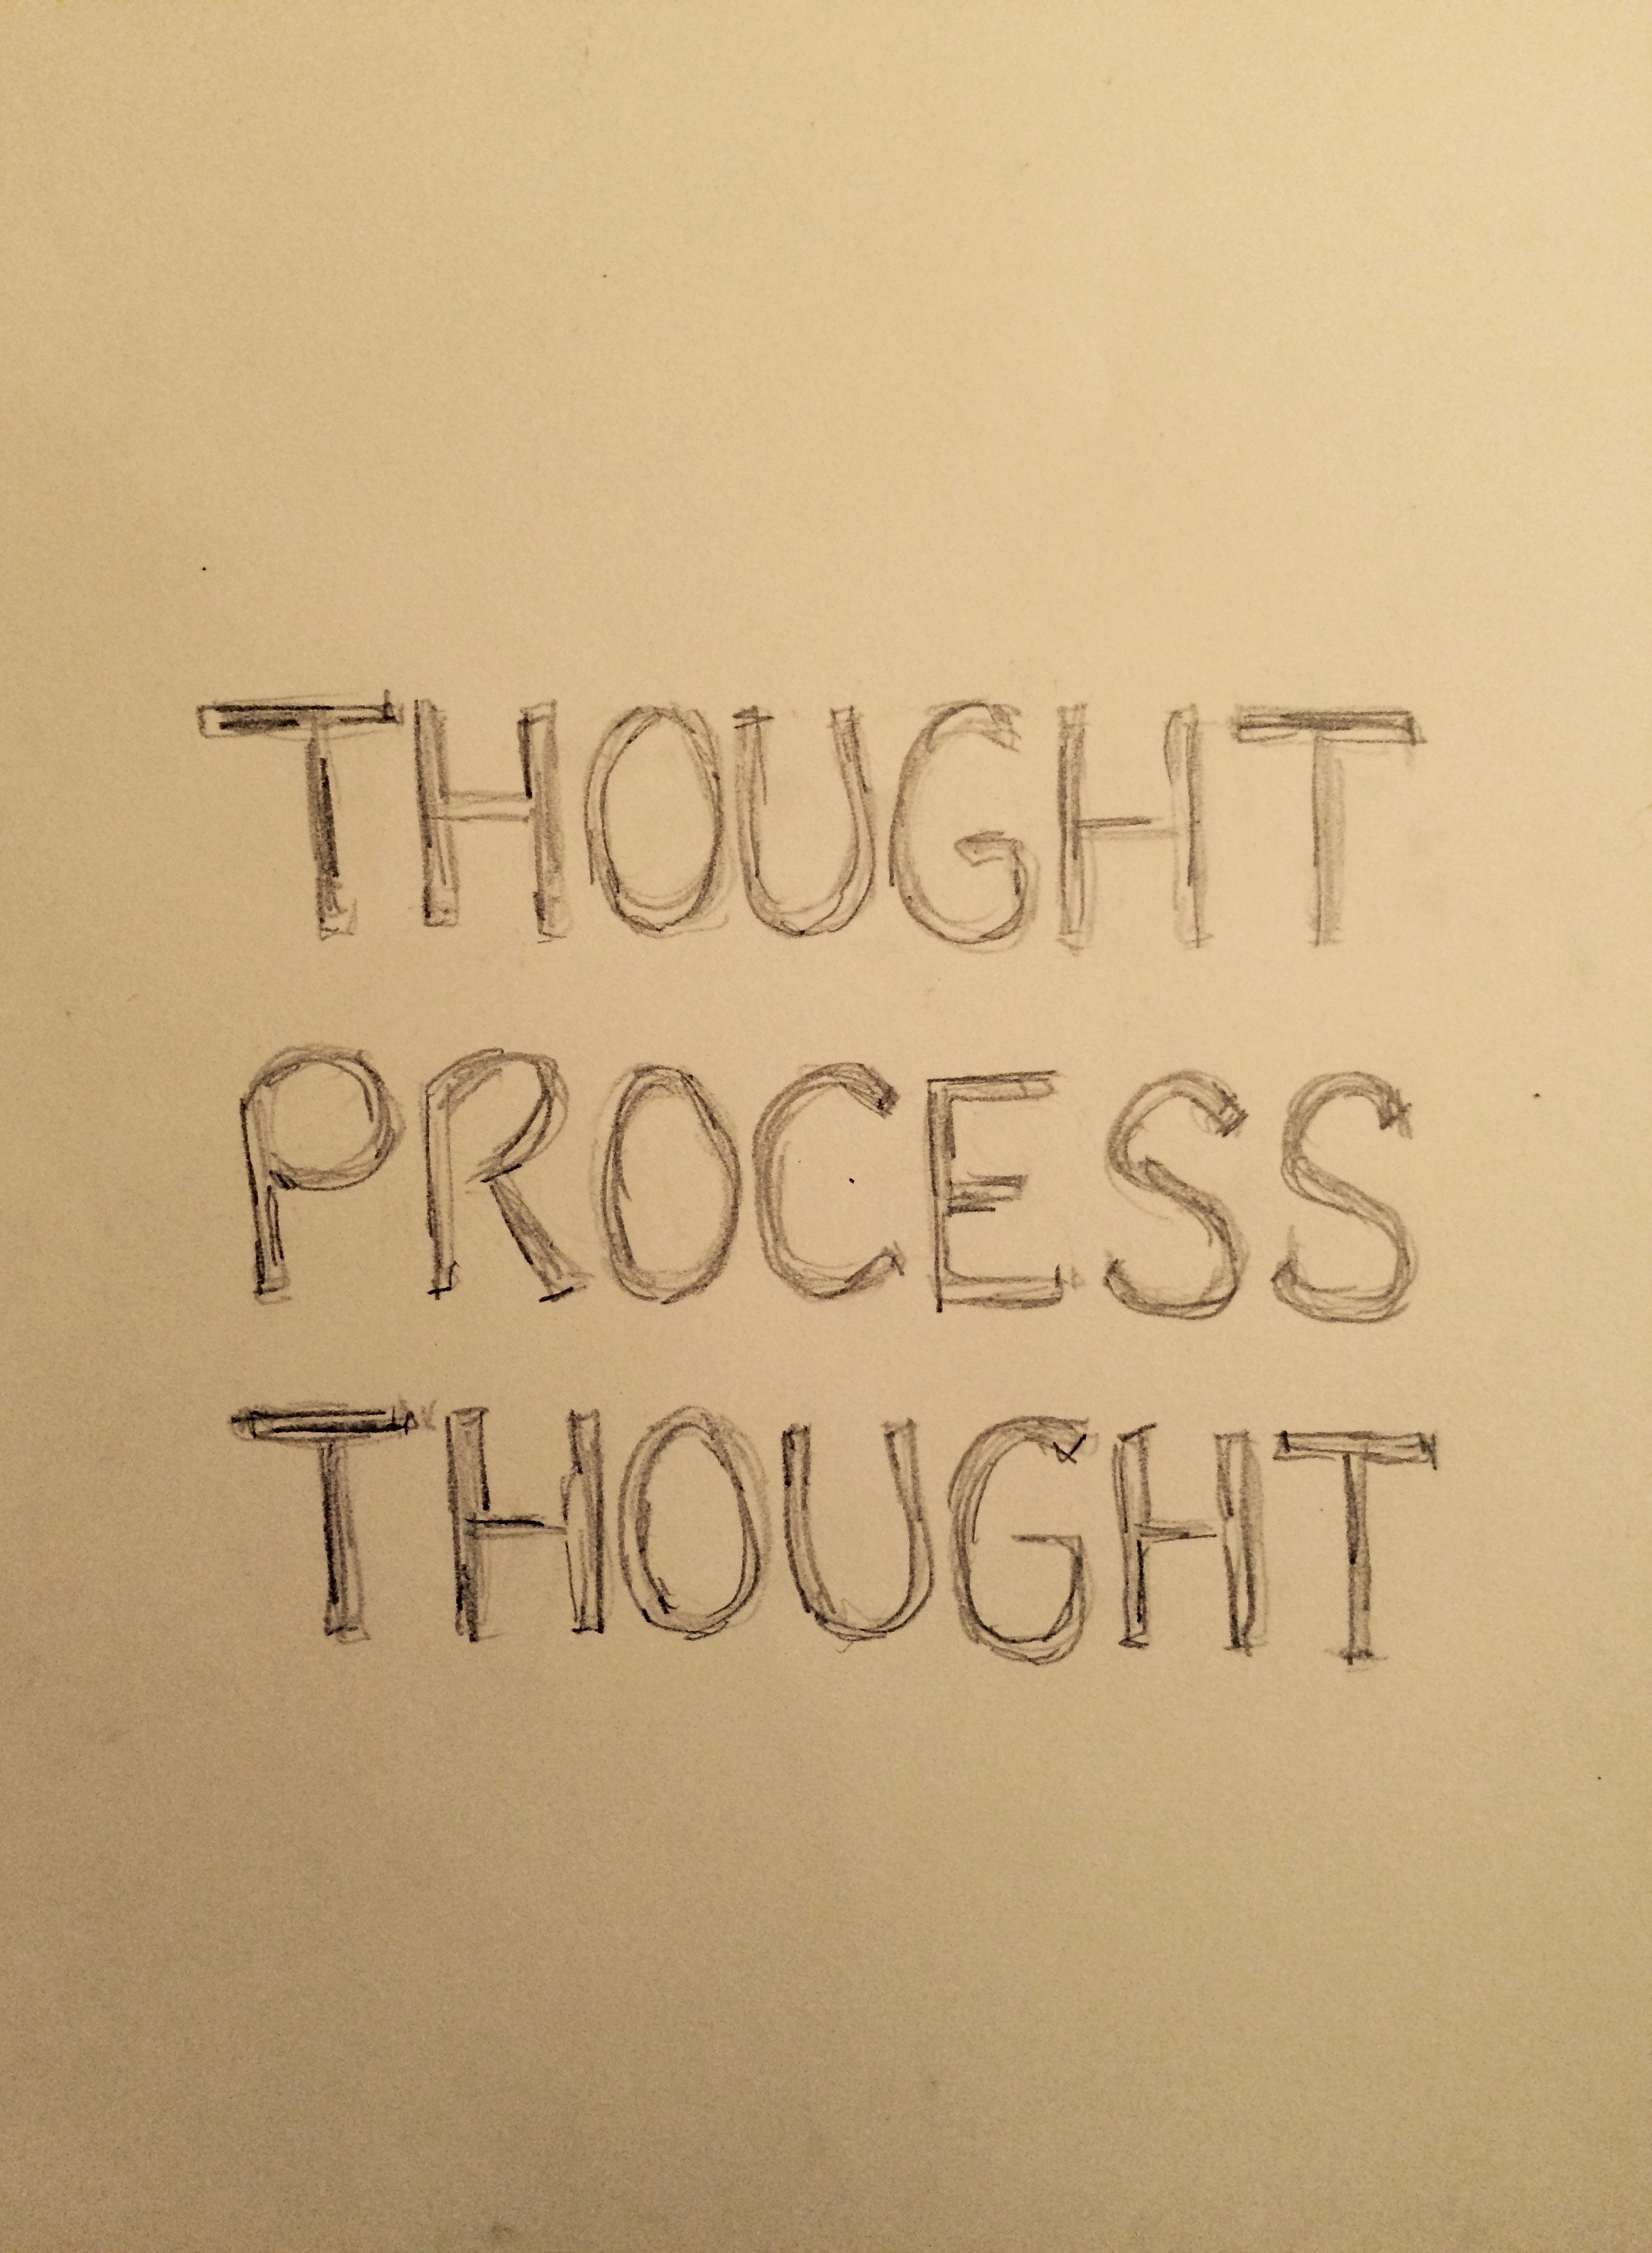 Thought Process